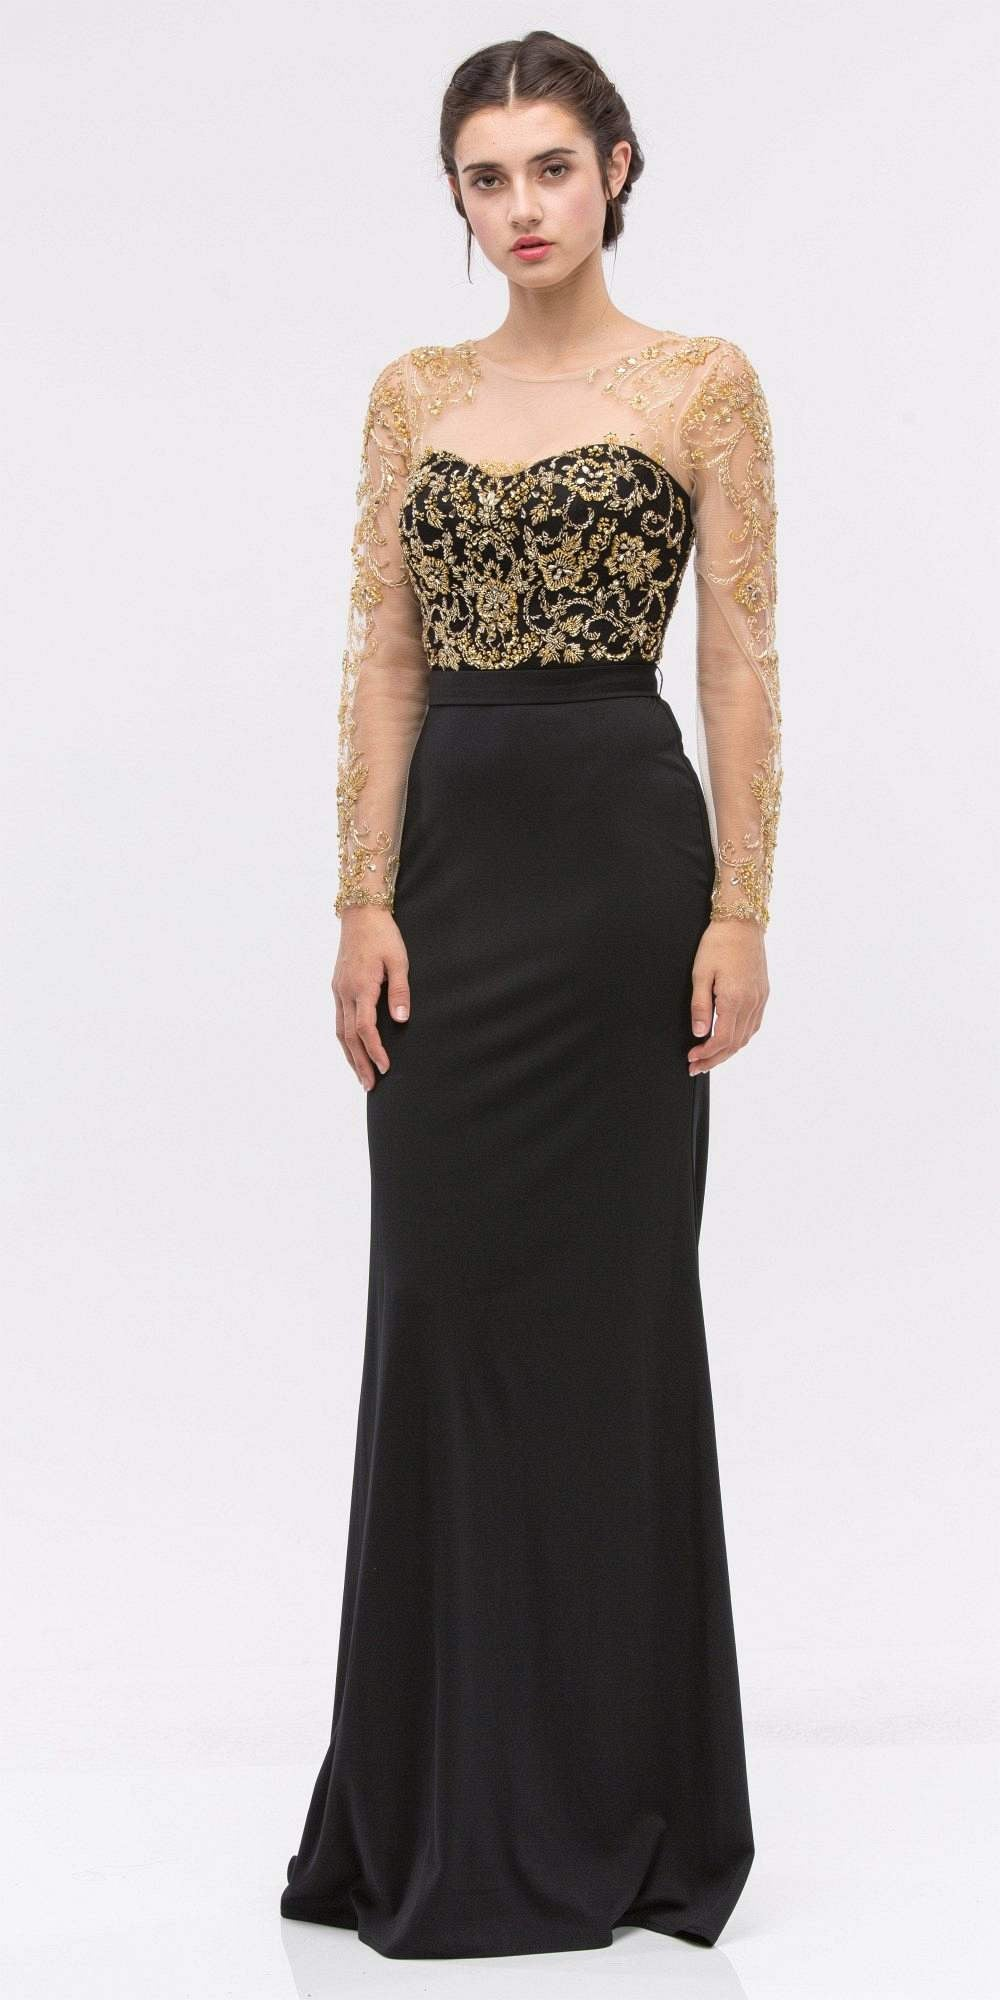 Gray Black and Gold Prom Dresses